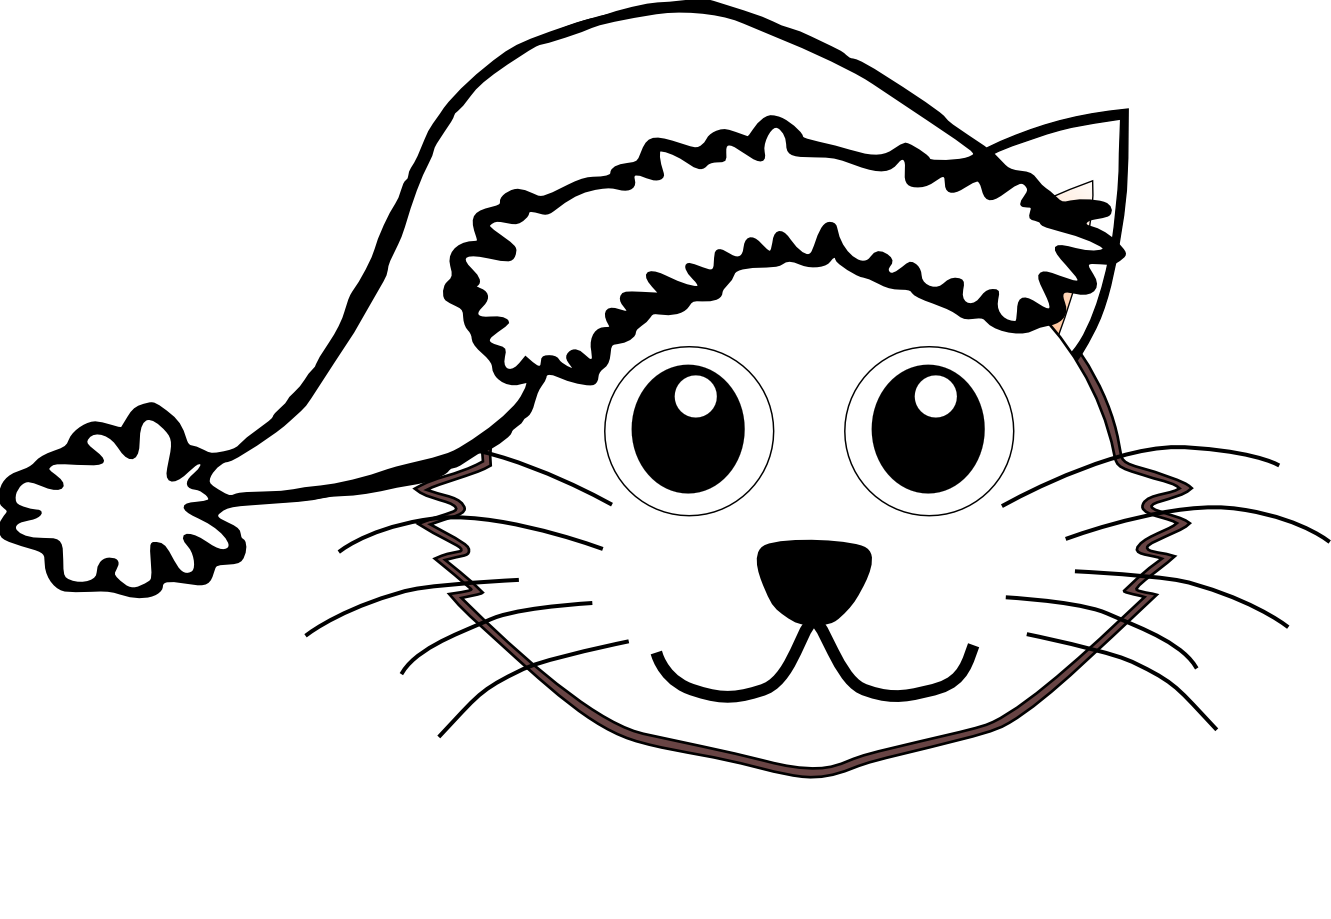 Cat In The Hat Drawing at GetDrawings.com | Free for personal use ...